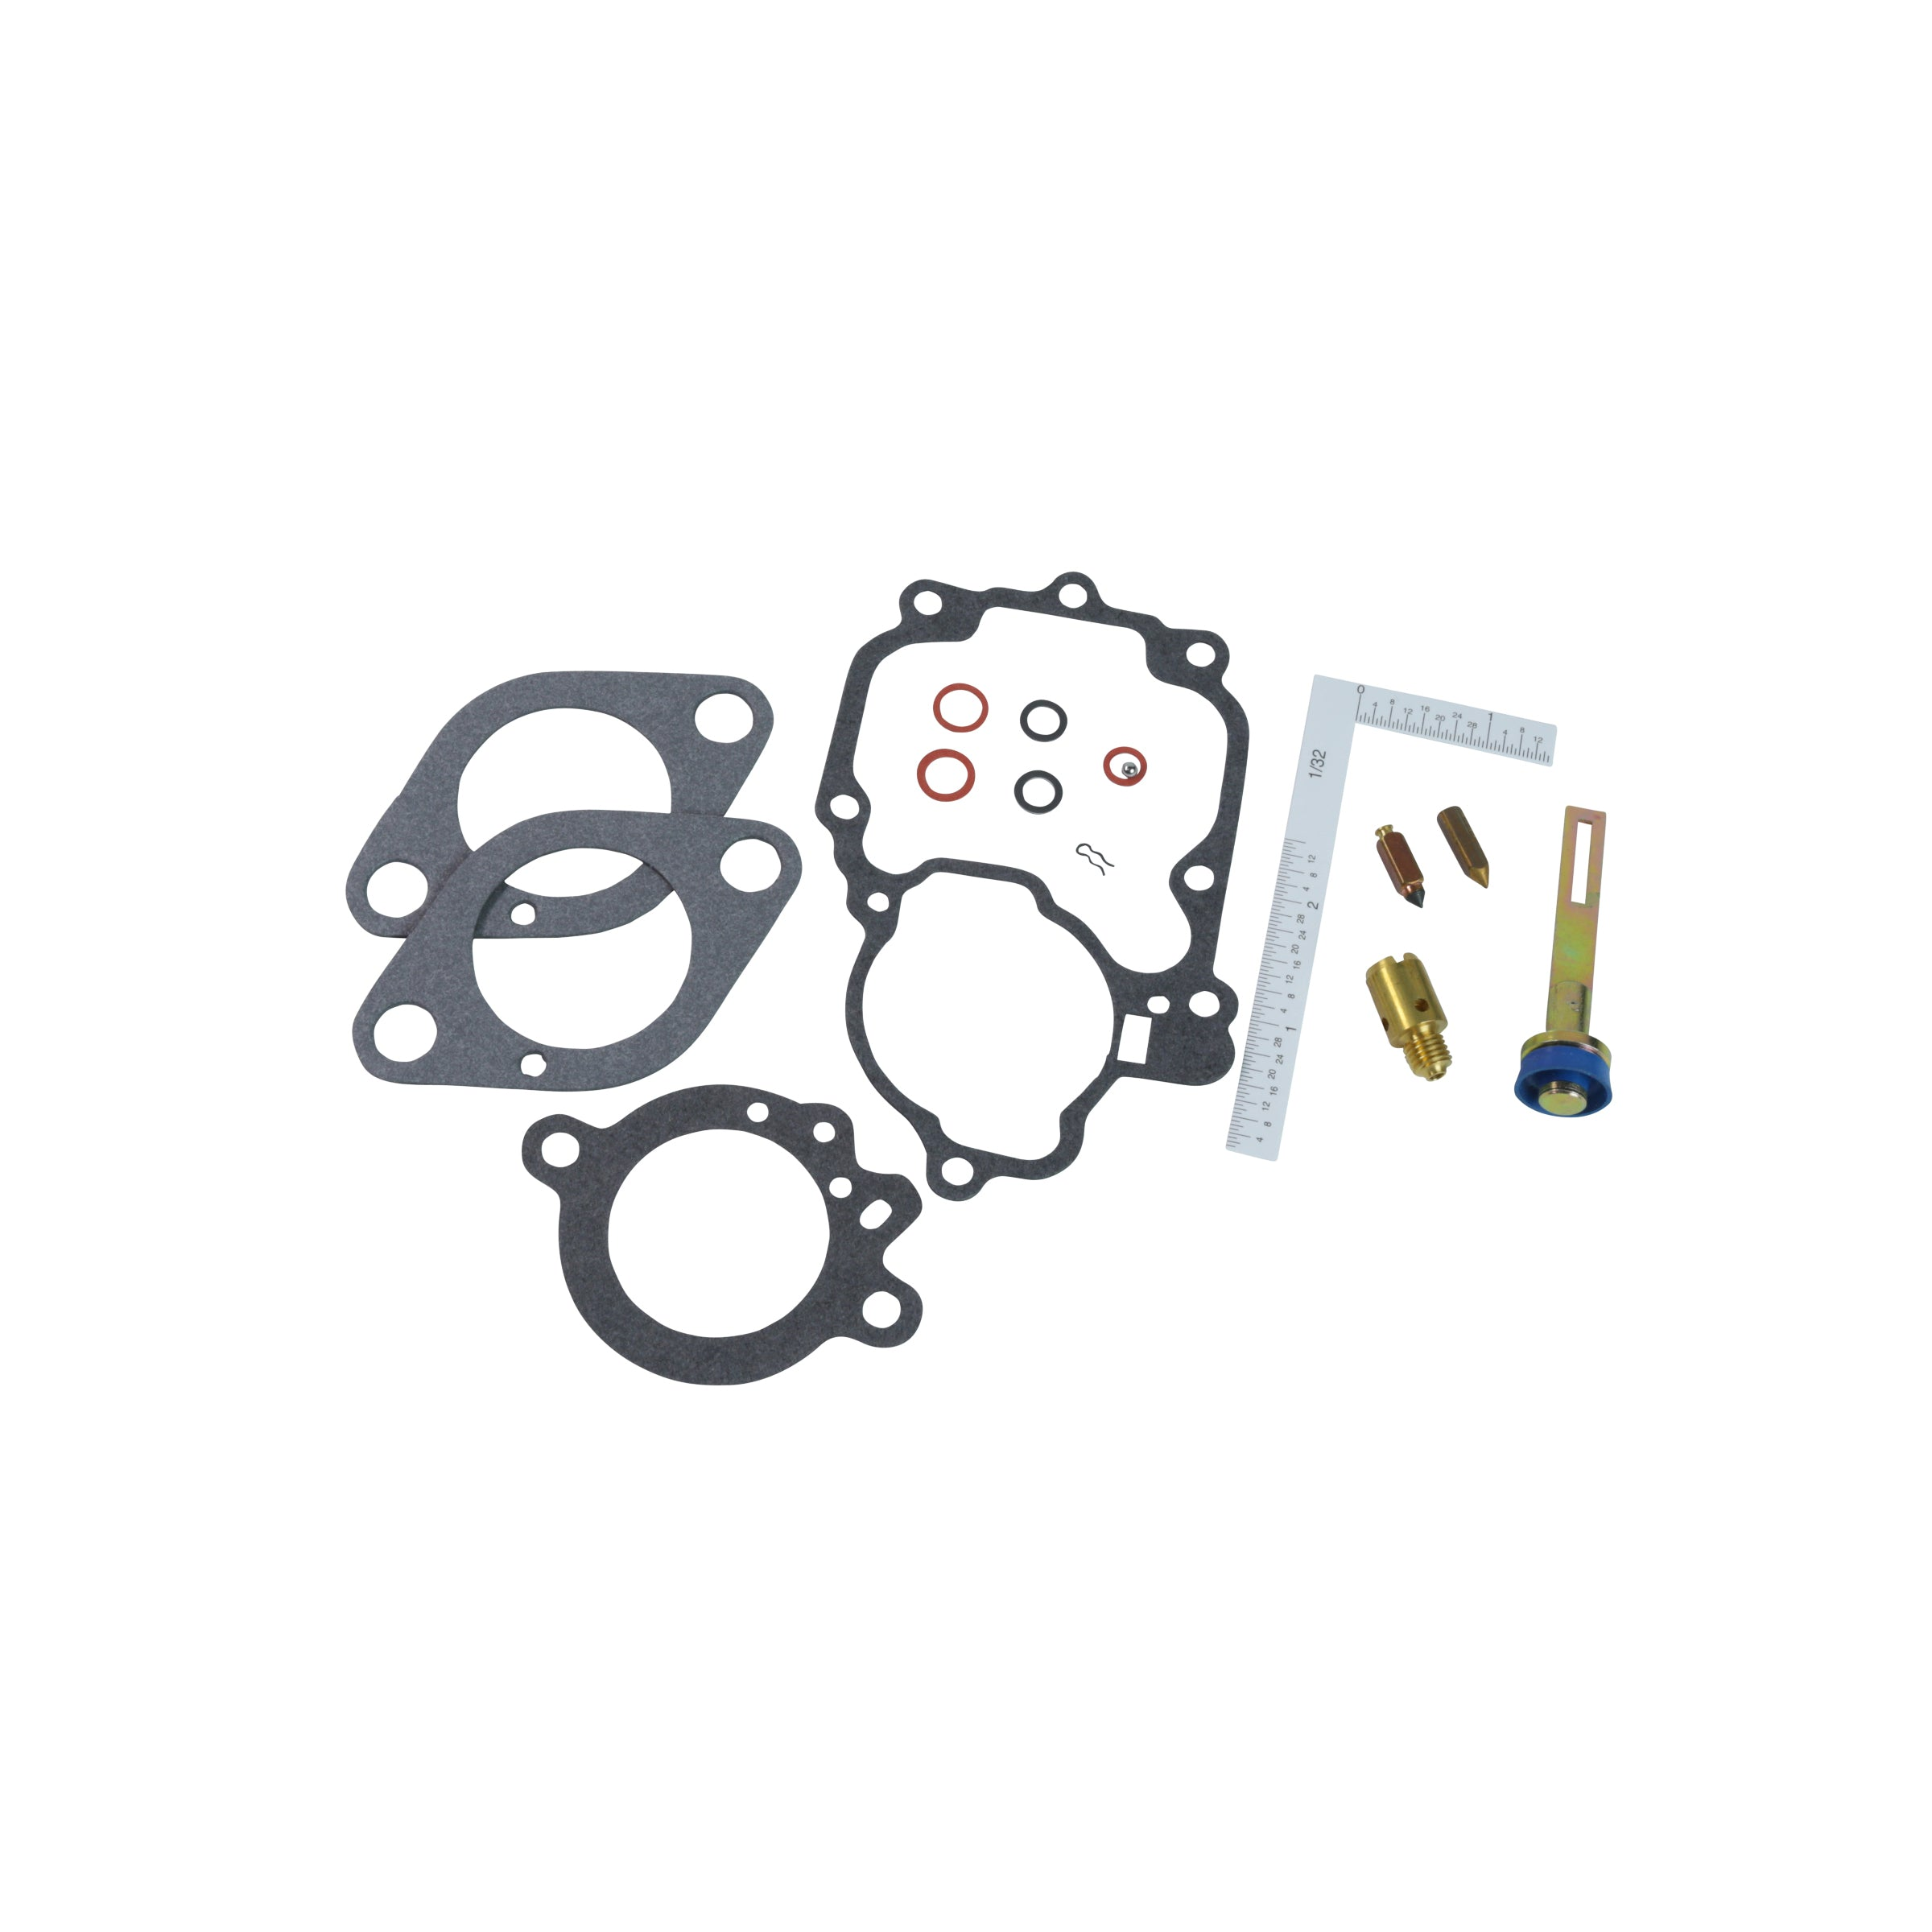 Carburetor Rebuild Kit (Holley) • 1941-51 Ford Passenger & Pickup 6 Cylinder